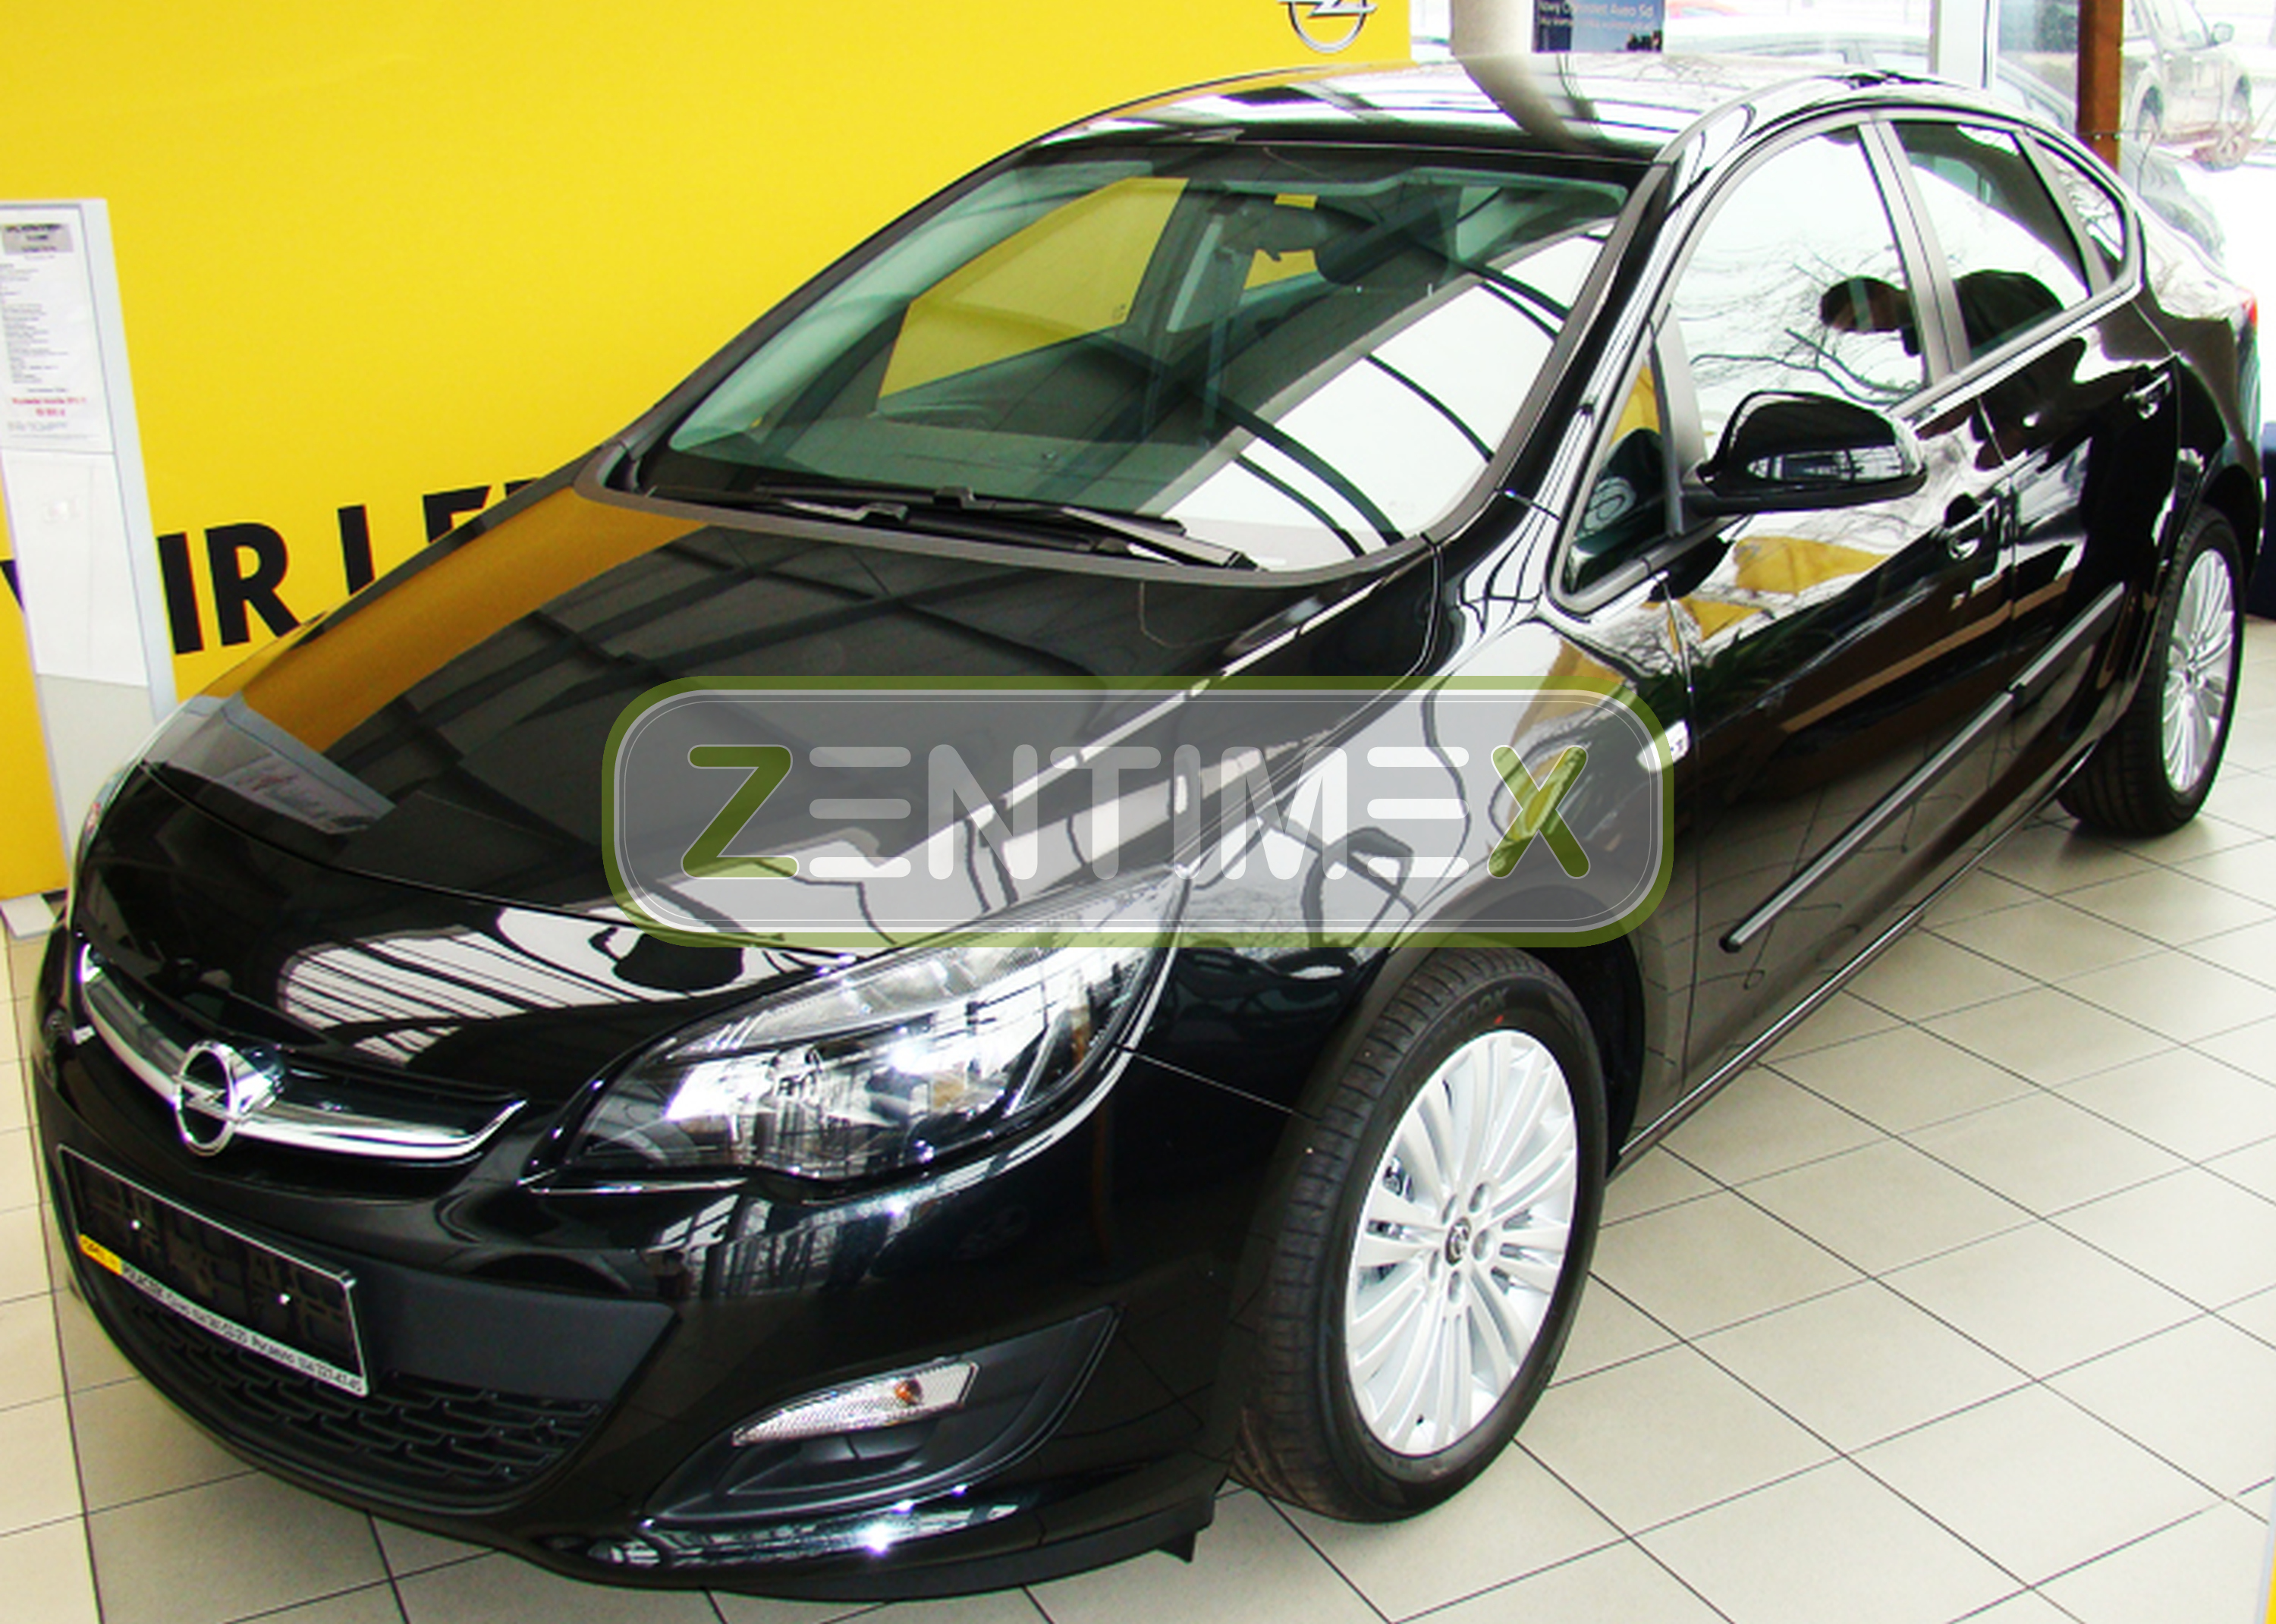 schutzleisten f r opel astra j 2012 limousine stufenheck 4 t rer ebay. Black Bedroom Furniture Sets. Home Design Ideas